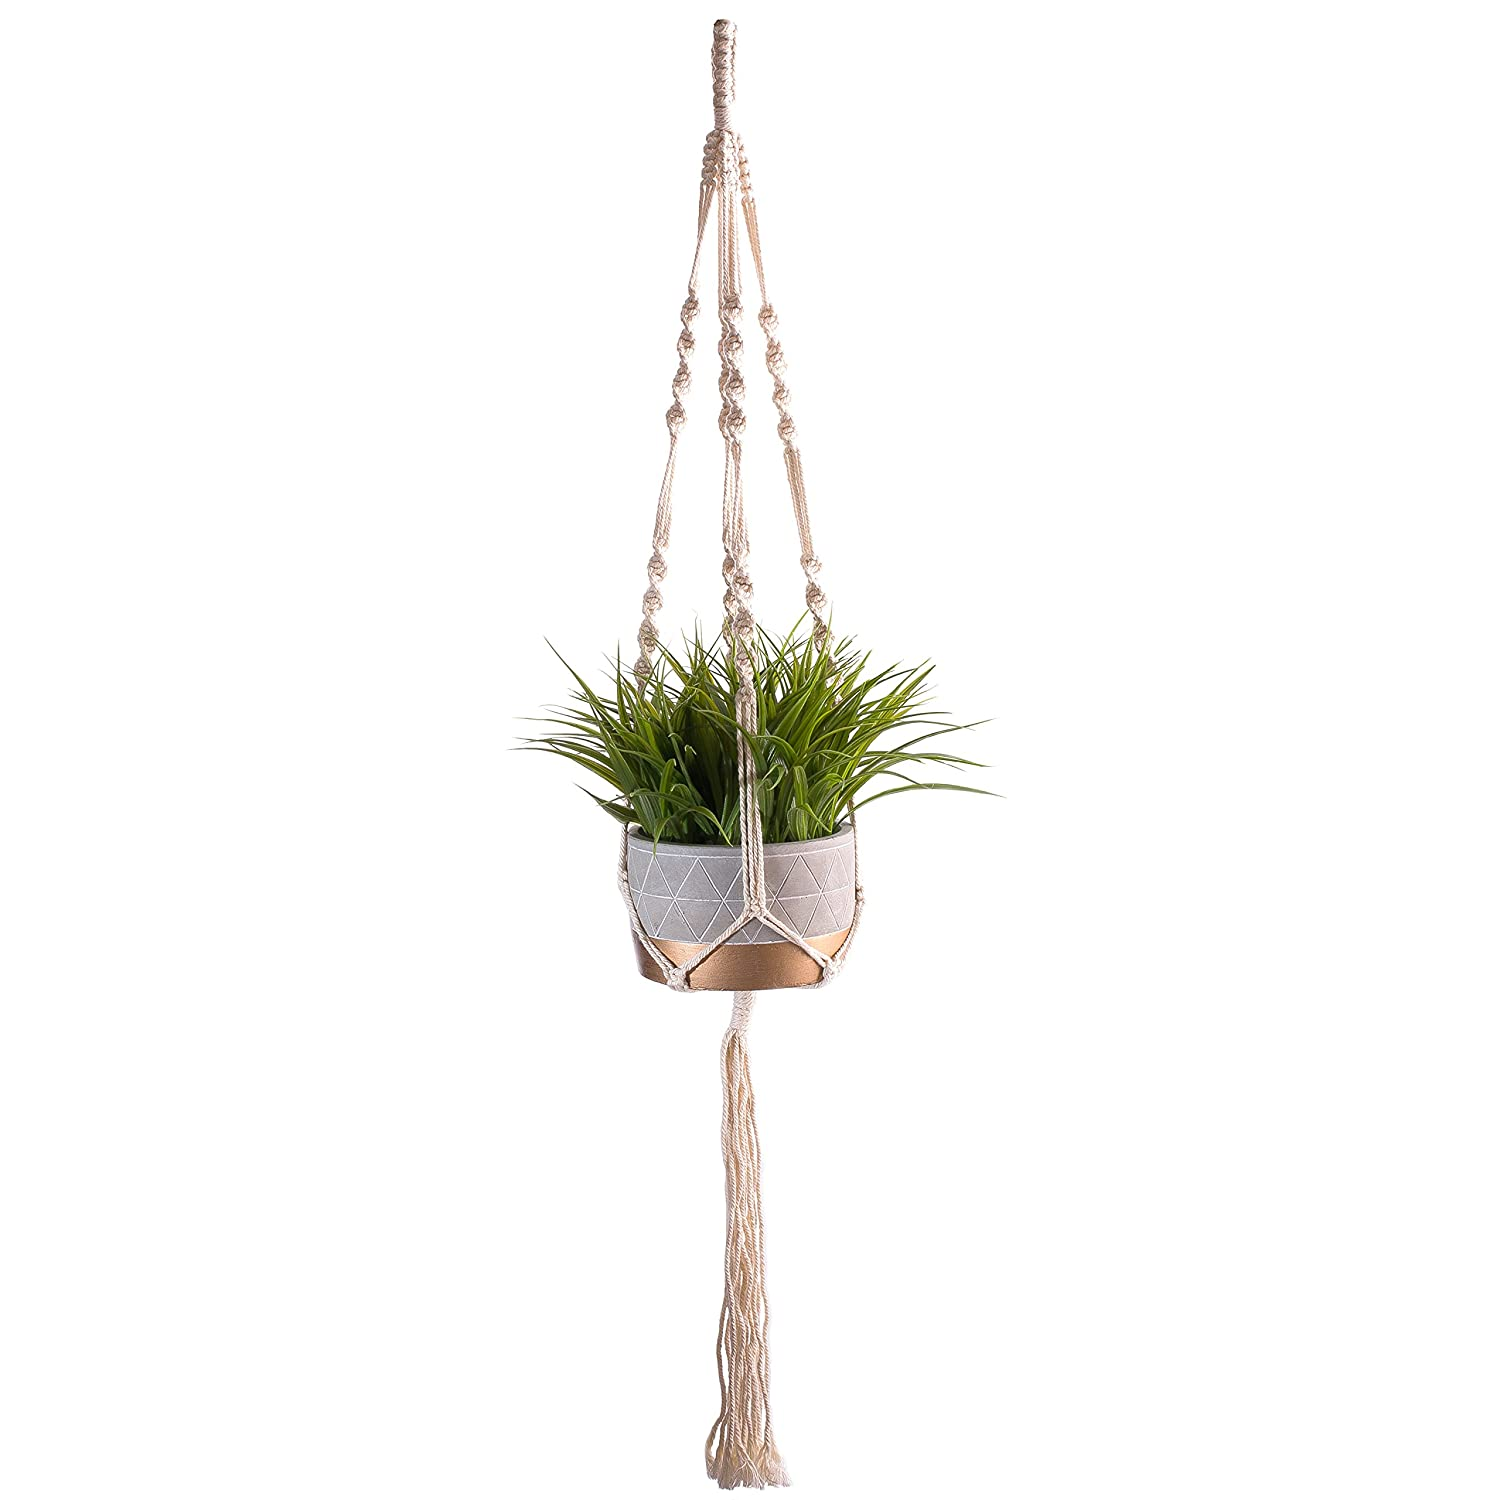 Macrame Plant Hangers Hanging Planters – Handmade 100 Percent Cotton Rope – 40 Inches Long 4 Legs – for Outdoor Indoor – for Pots Up To 10 Inches Diameter – Plant and Pot Not Included